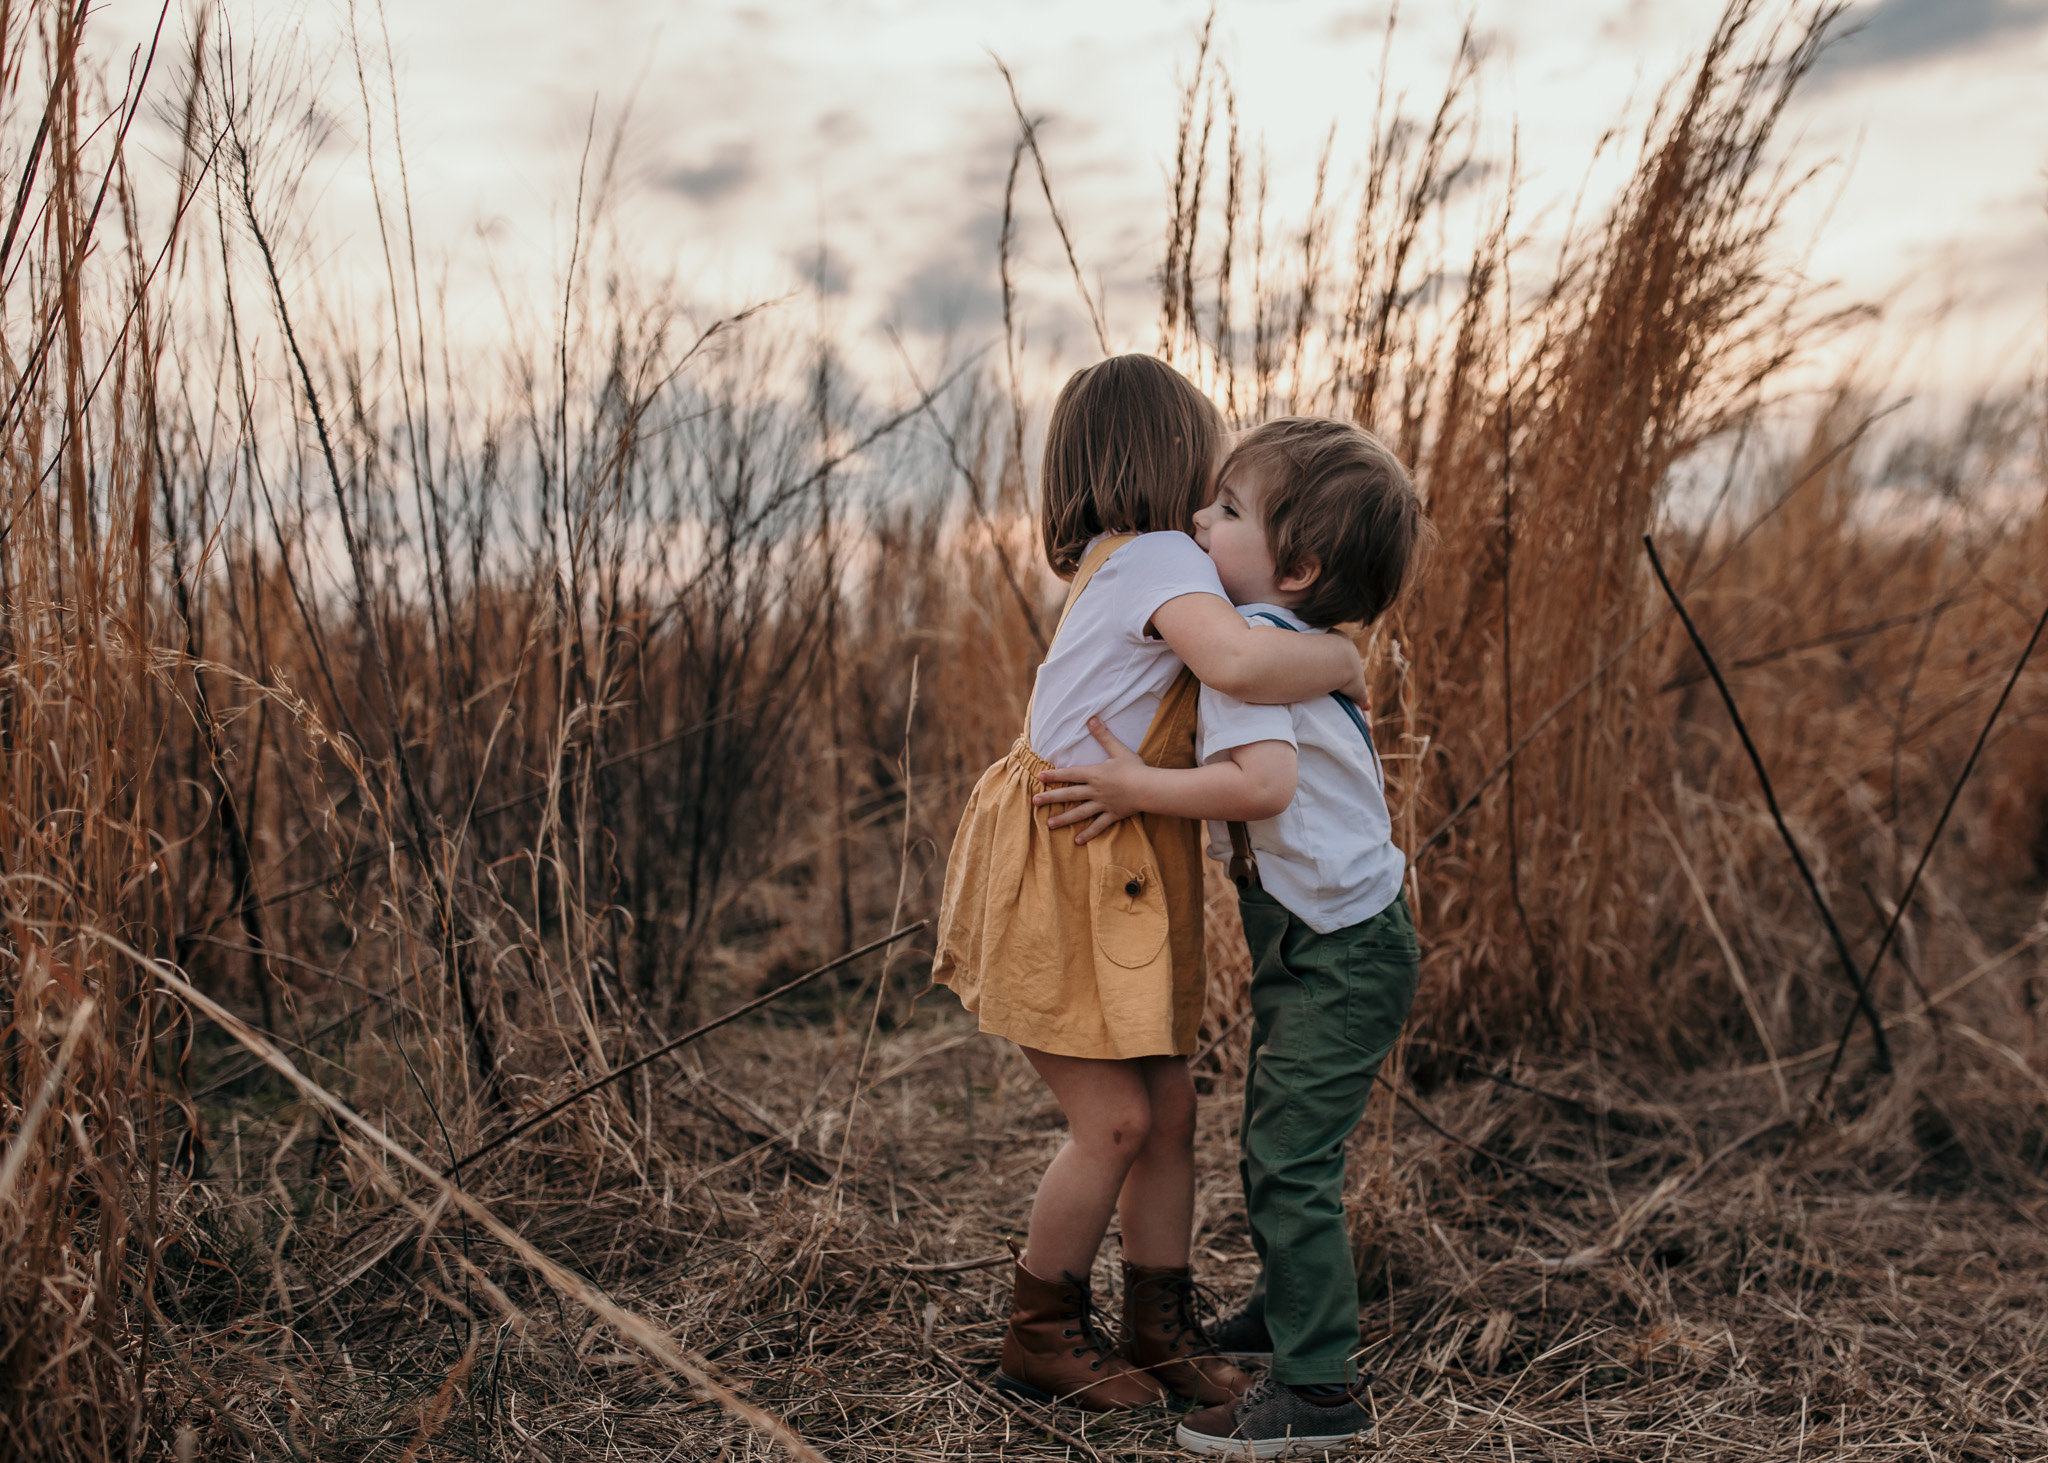 Young Boy and Girl Hugging